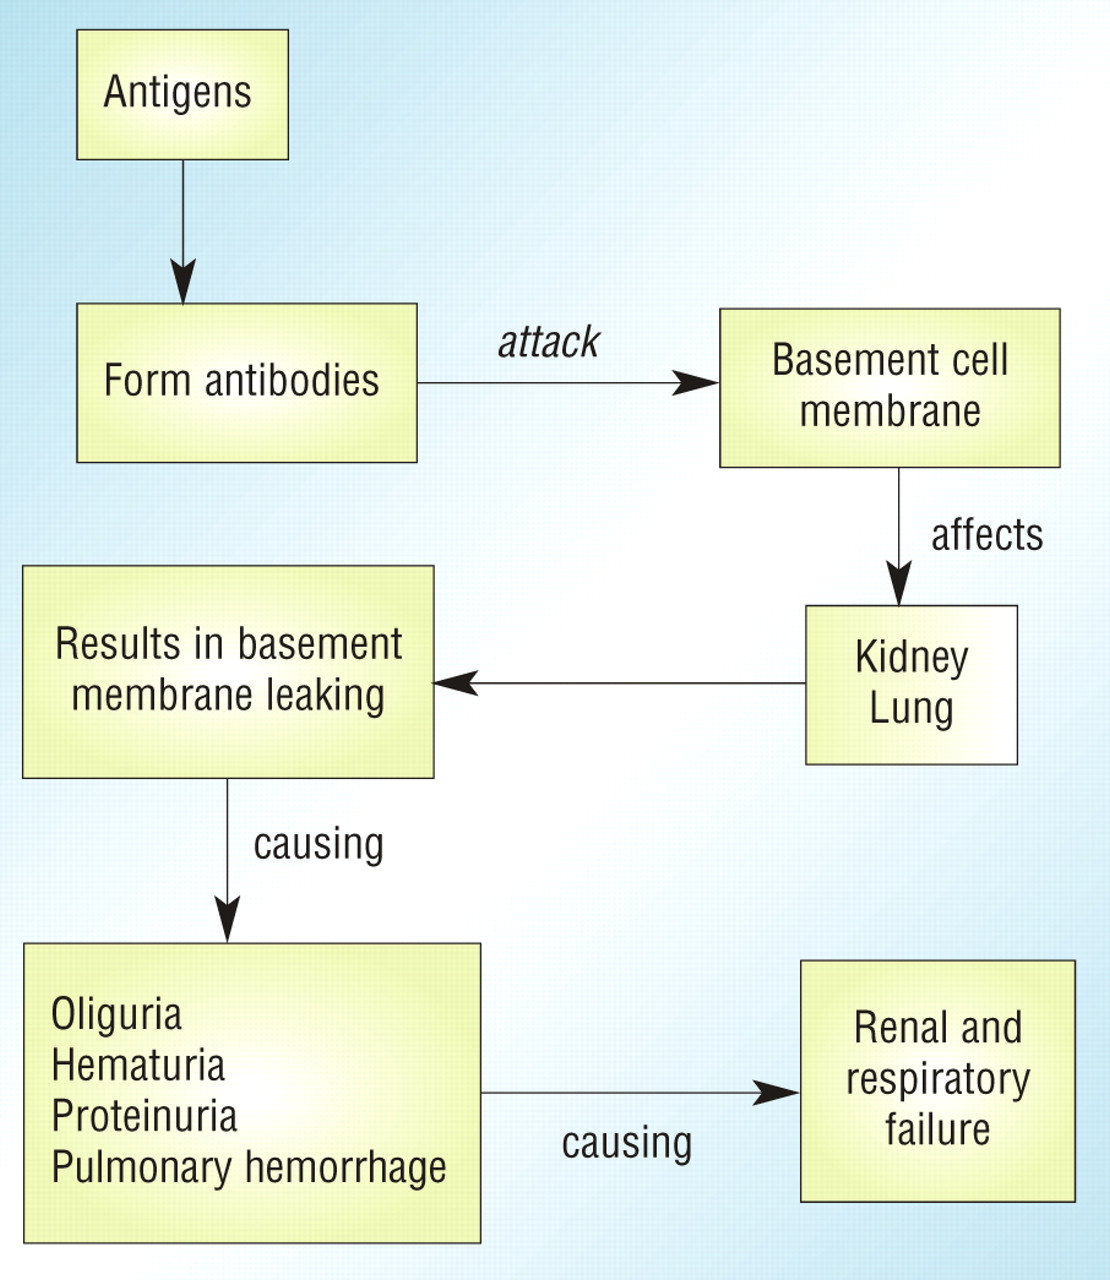 Pathophysiology of Goodpasture syndrome (source)